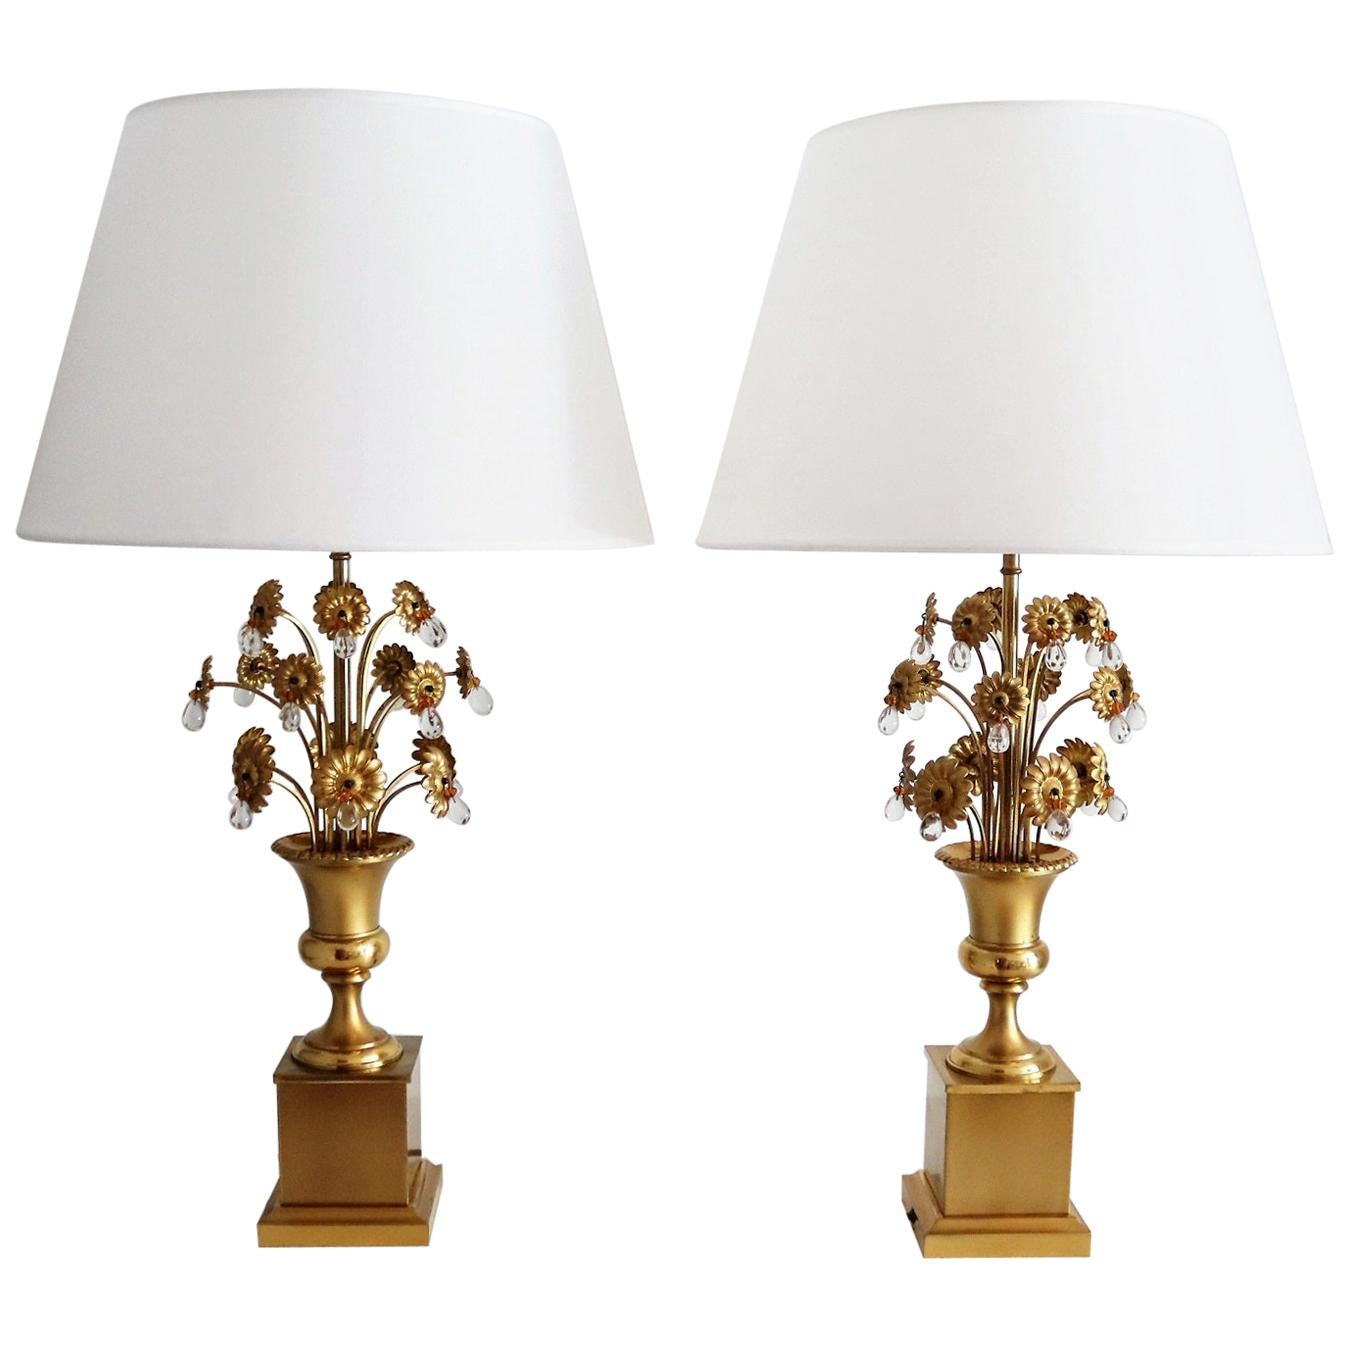 French Hollywood Regency Table Lamps with Metal Flowers and Crystal Glass, 1970s